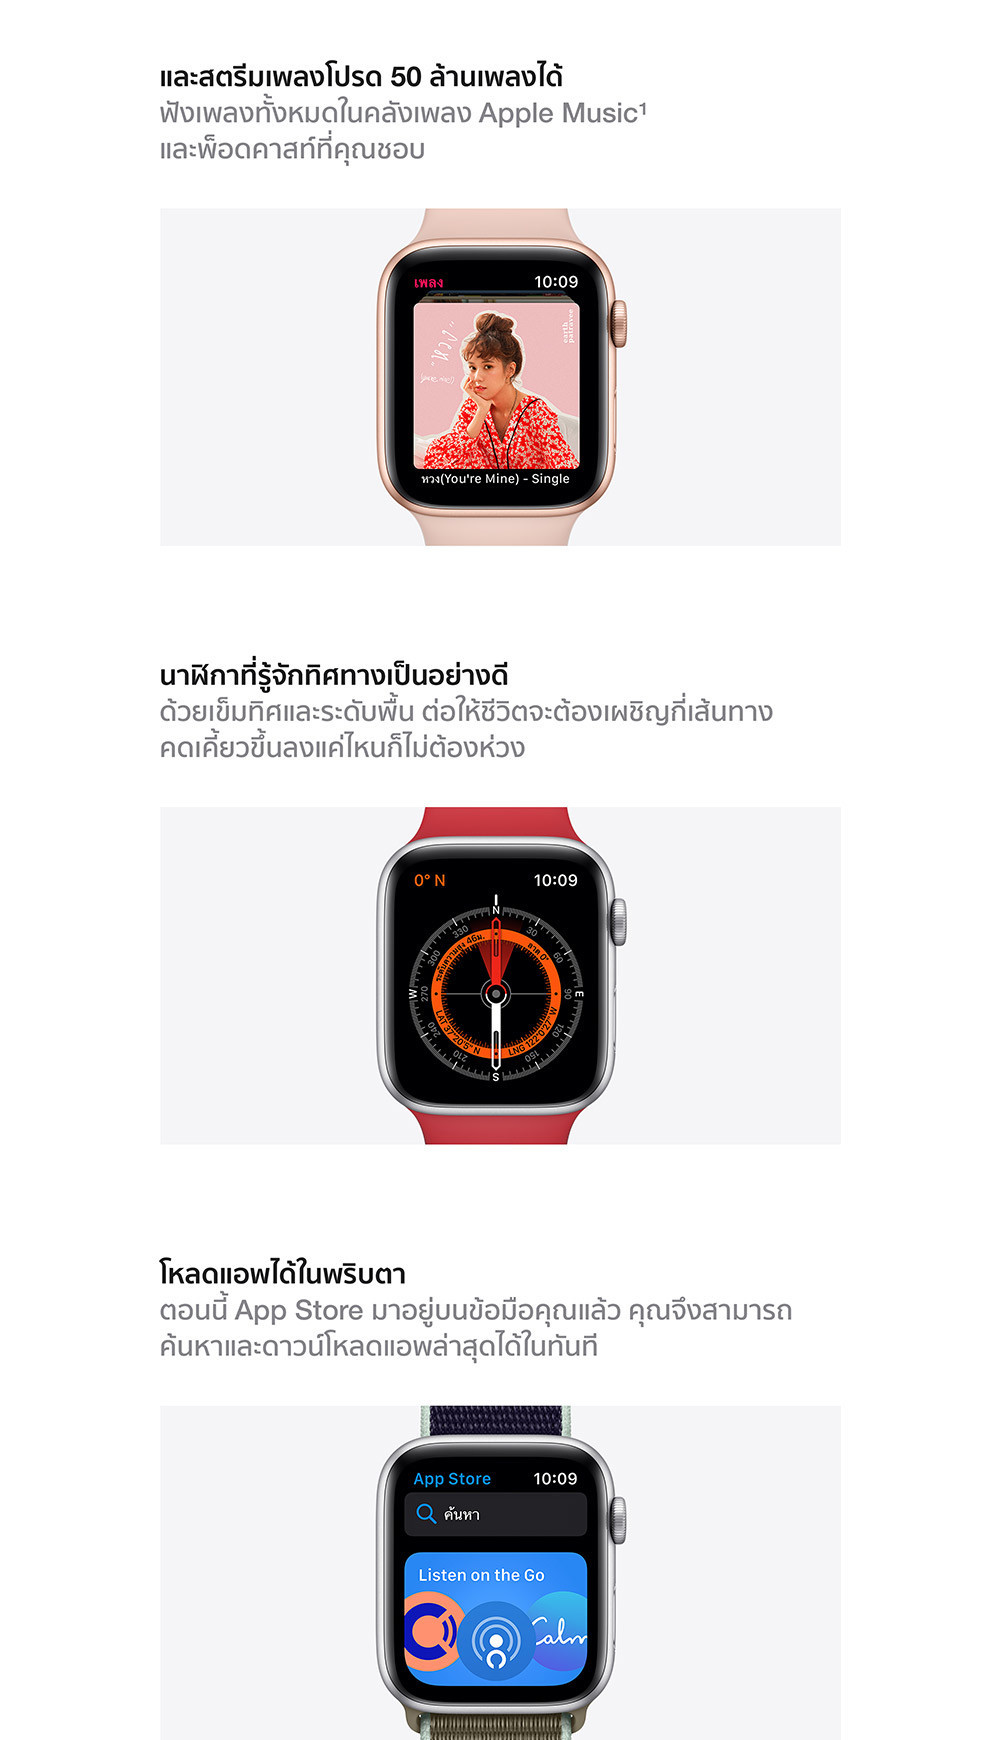 c4applewatchseries54.jpg